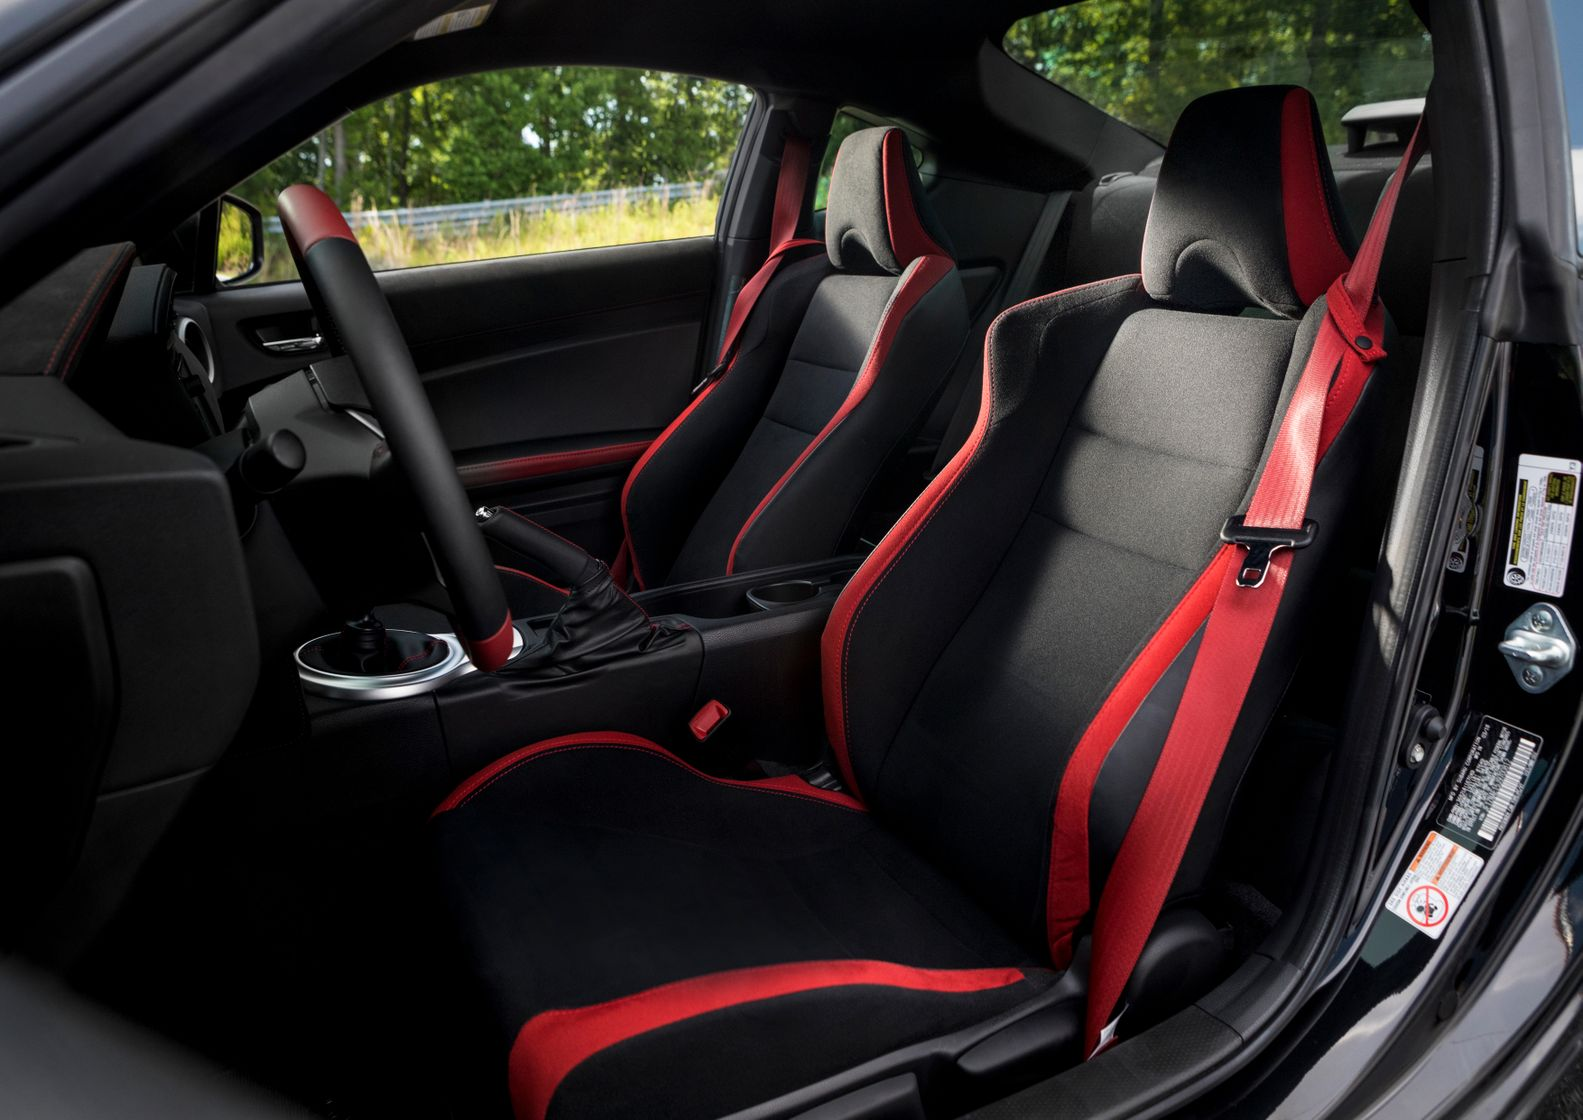 2019 Toyota 86 TRD Special Edition Interior Seating